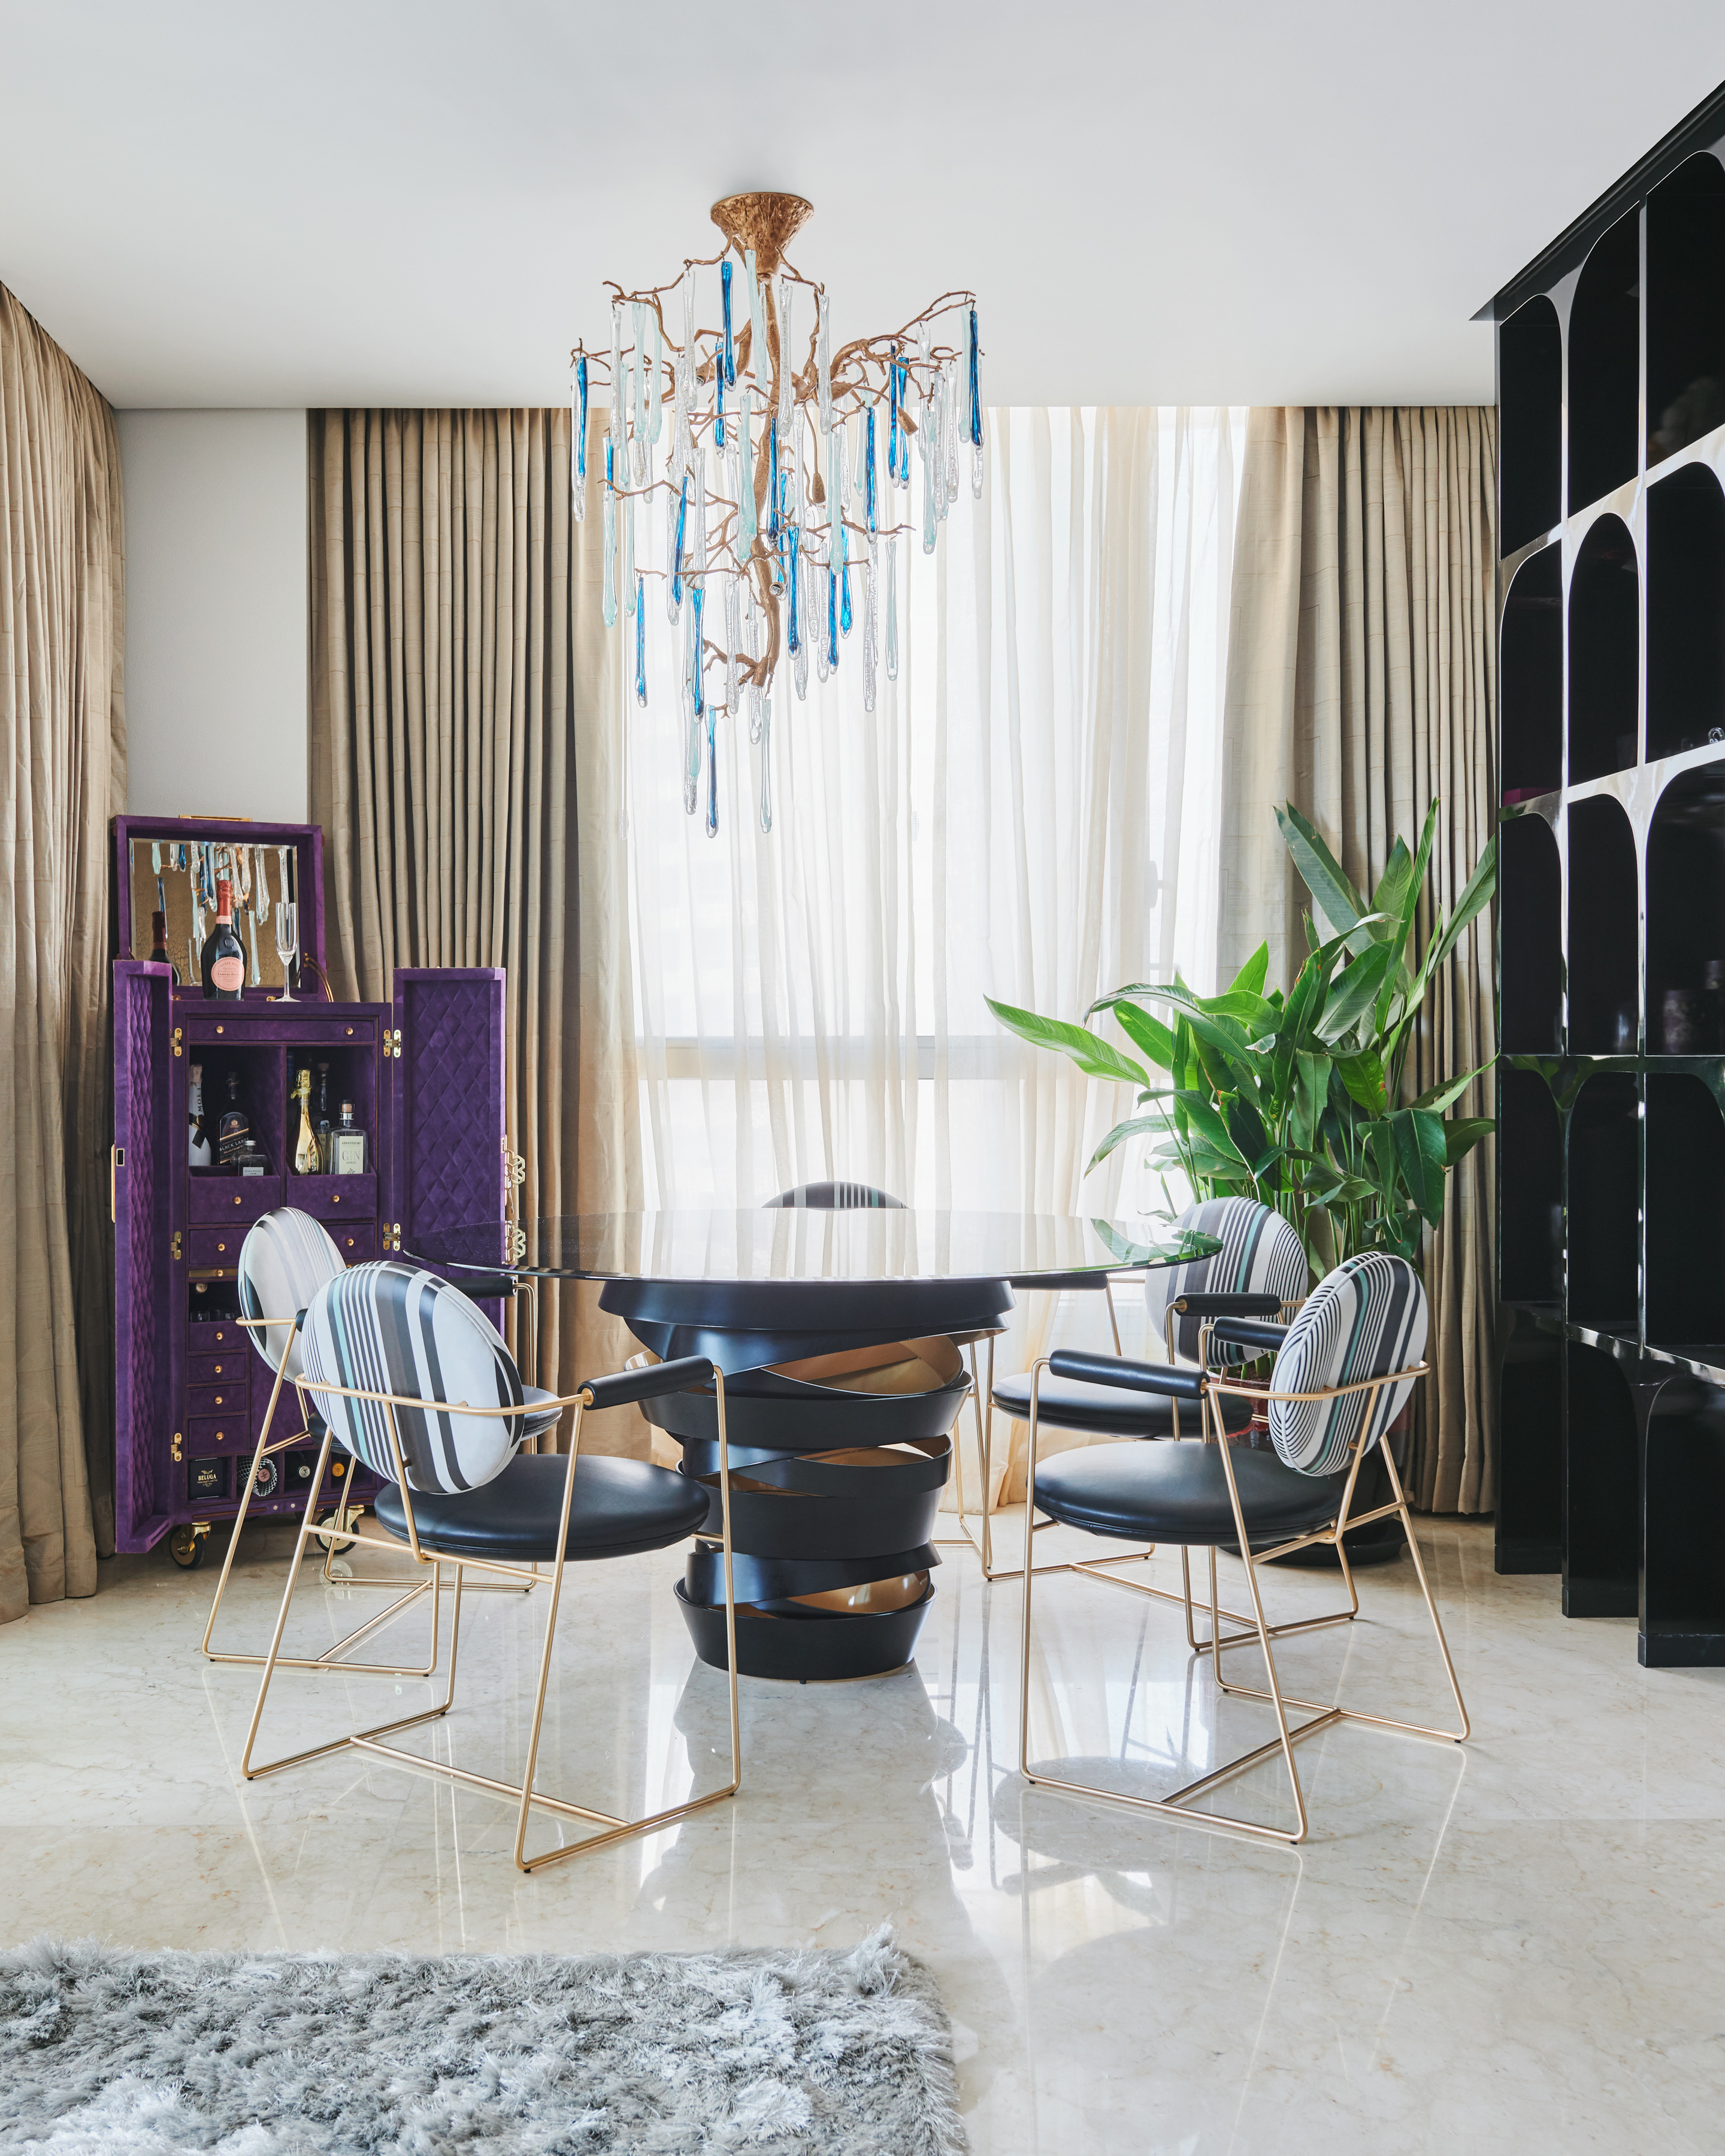 A Luxury Apartment That Magnifies The Exclusive Lifestyle Experience luxury apartment A Luxury Apartment That Magnifies The Exclusive Lifestyle Experience A Luxury Apartment That Magnifies The Exclusive Lifestyle Experience 16